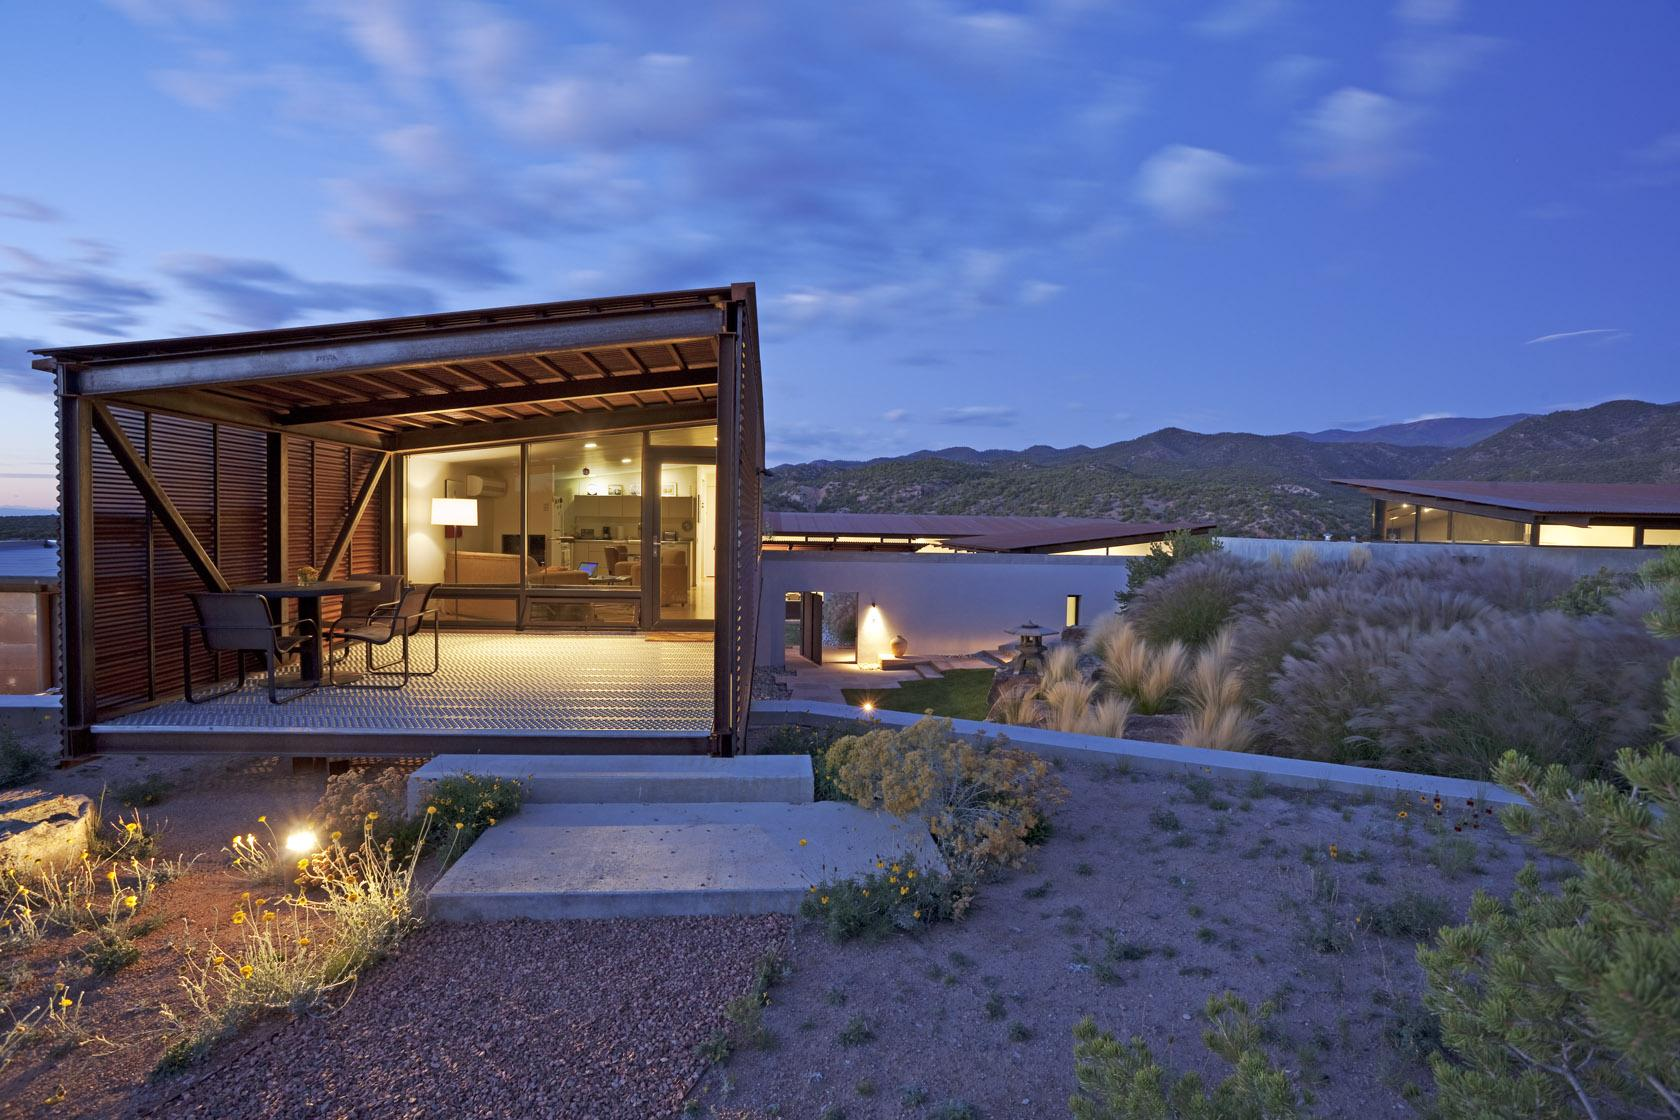 Desert House in Santa Fe, New Mexico